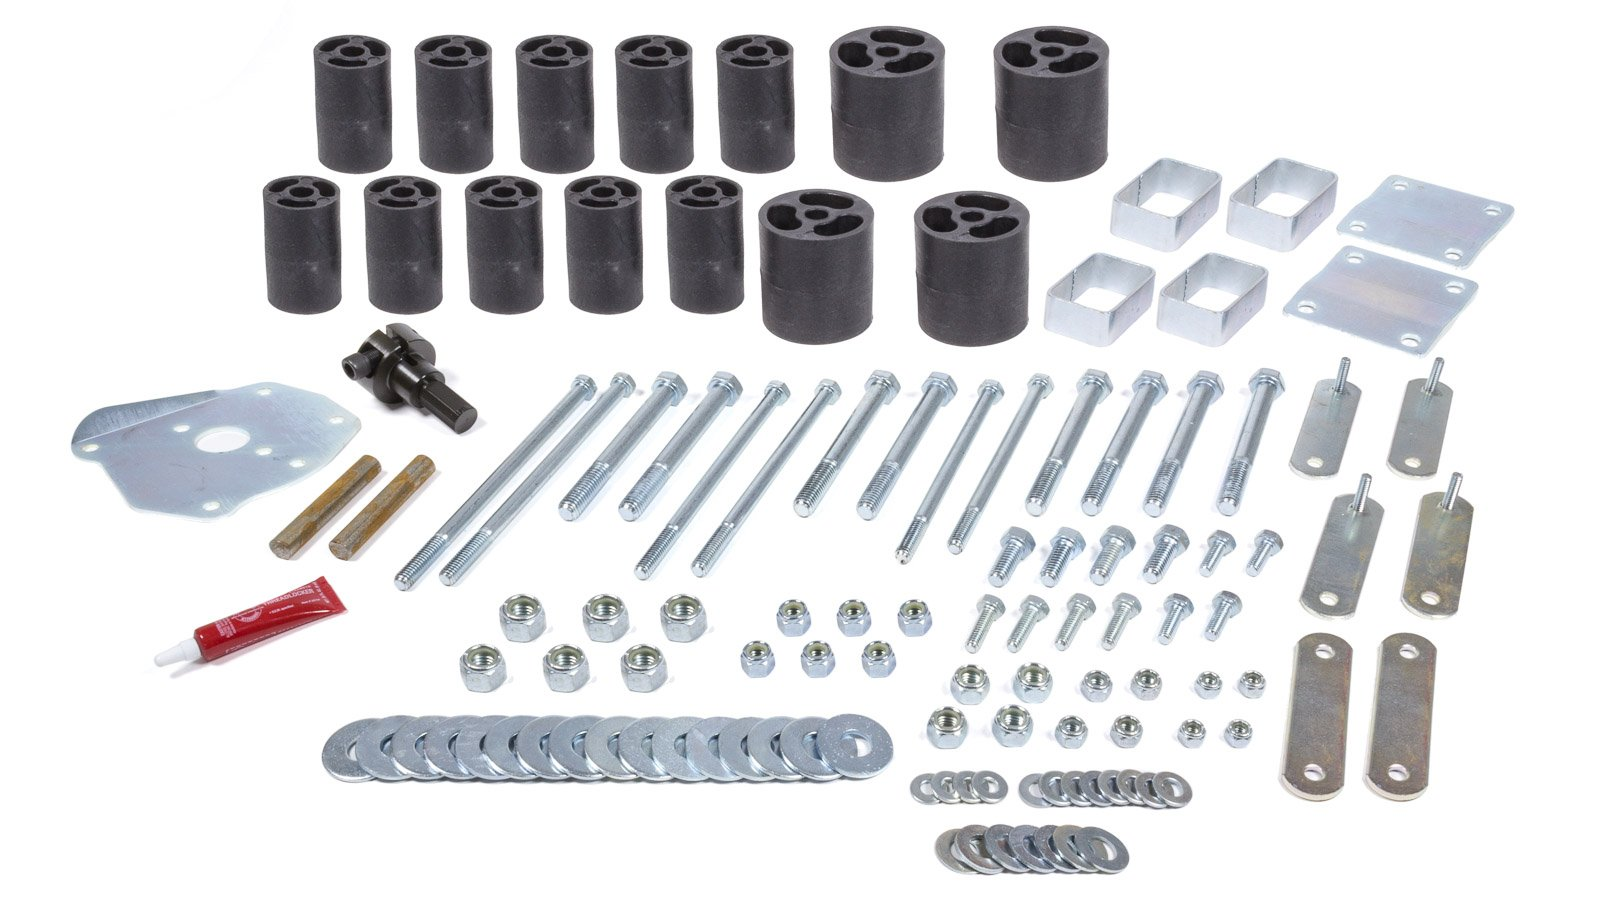 Performance Accessories, Toyota Pickup 4WD Std/Ext Cab (#9628 Req For Auto Trans) 3'' Body Lift Kit, fits 1989 to 1995, PA5503M, Made in America by Performance Accessories (Image #1)